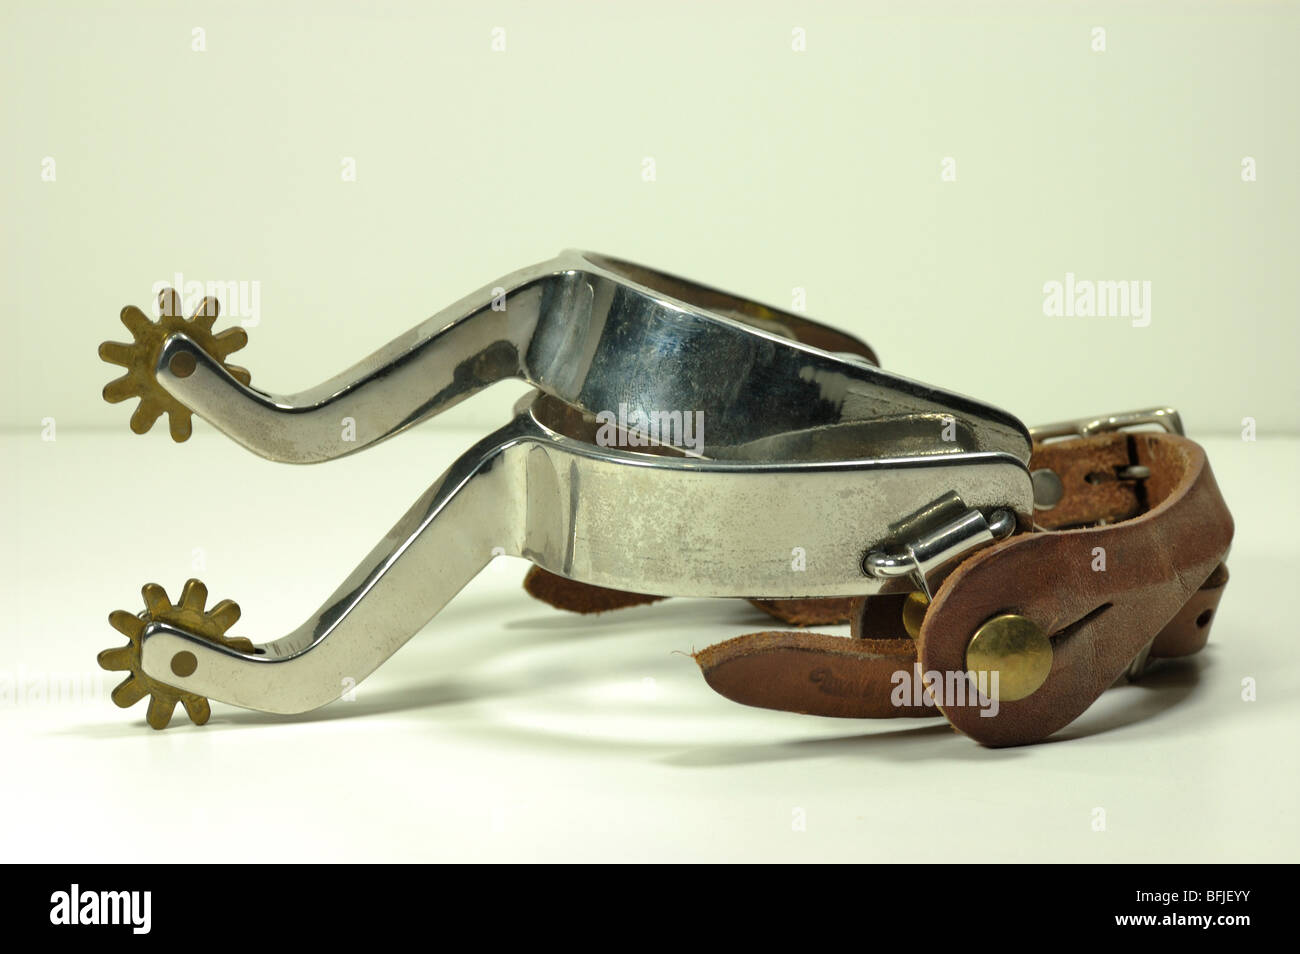 Close up of a set of boot spurs - Stock Image